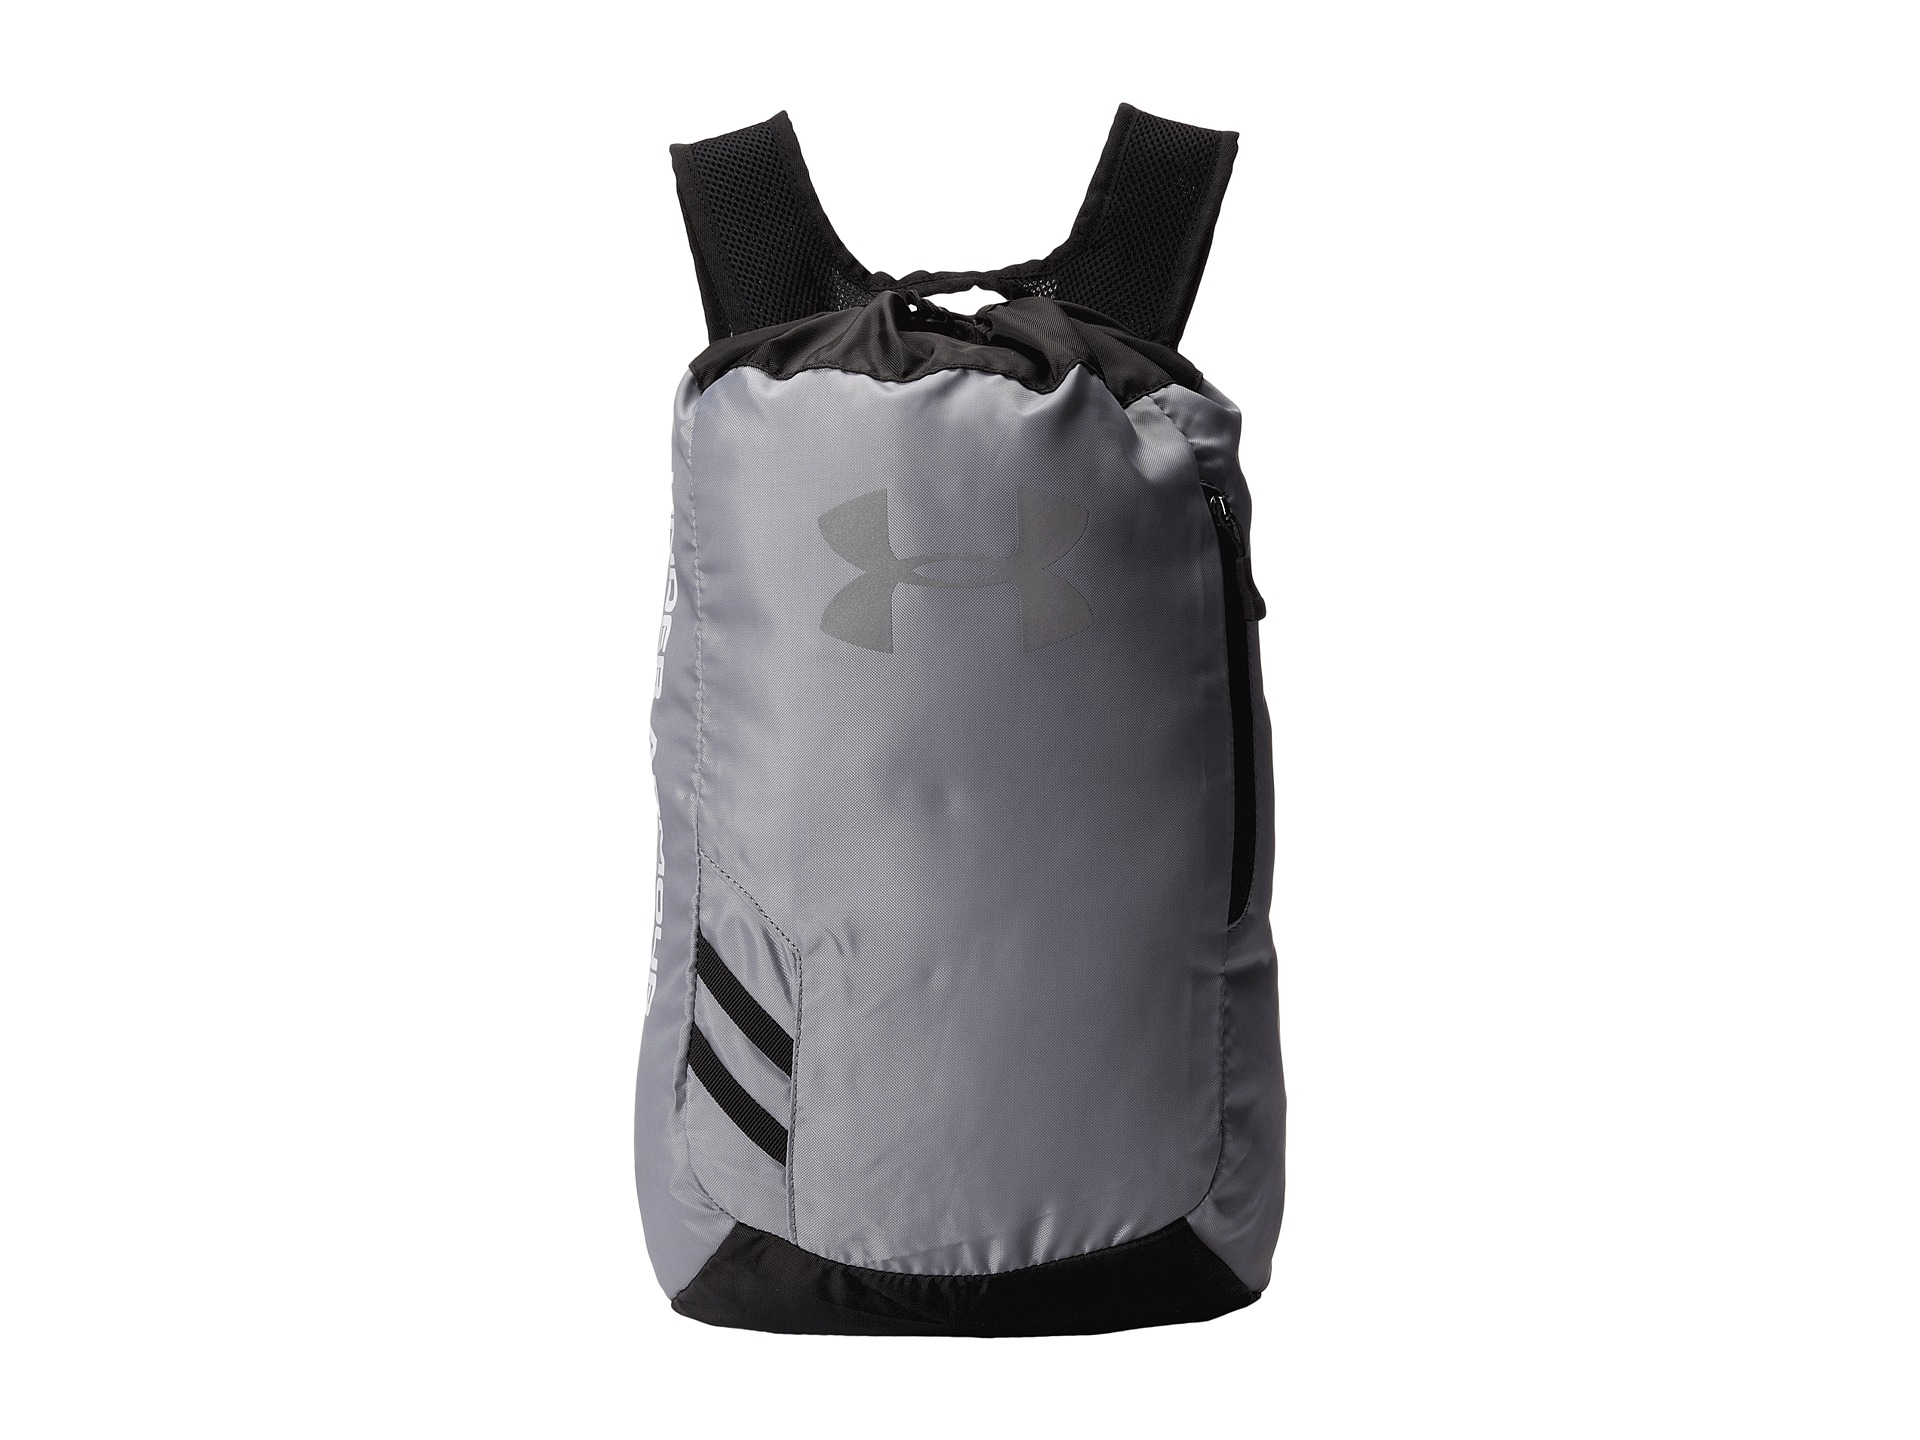 sling backpack under armour cheap   OFF42% The Largest Catalog Discounts 1f19531f460d0